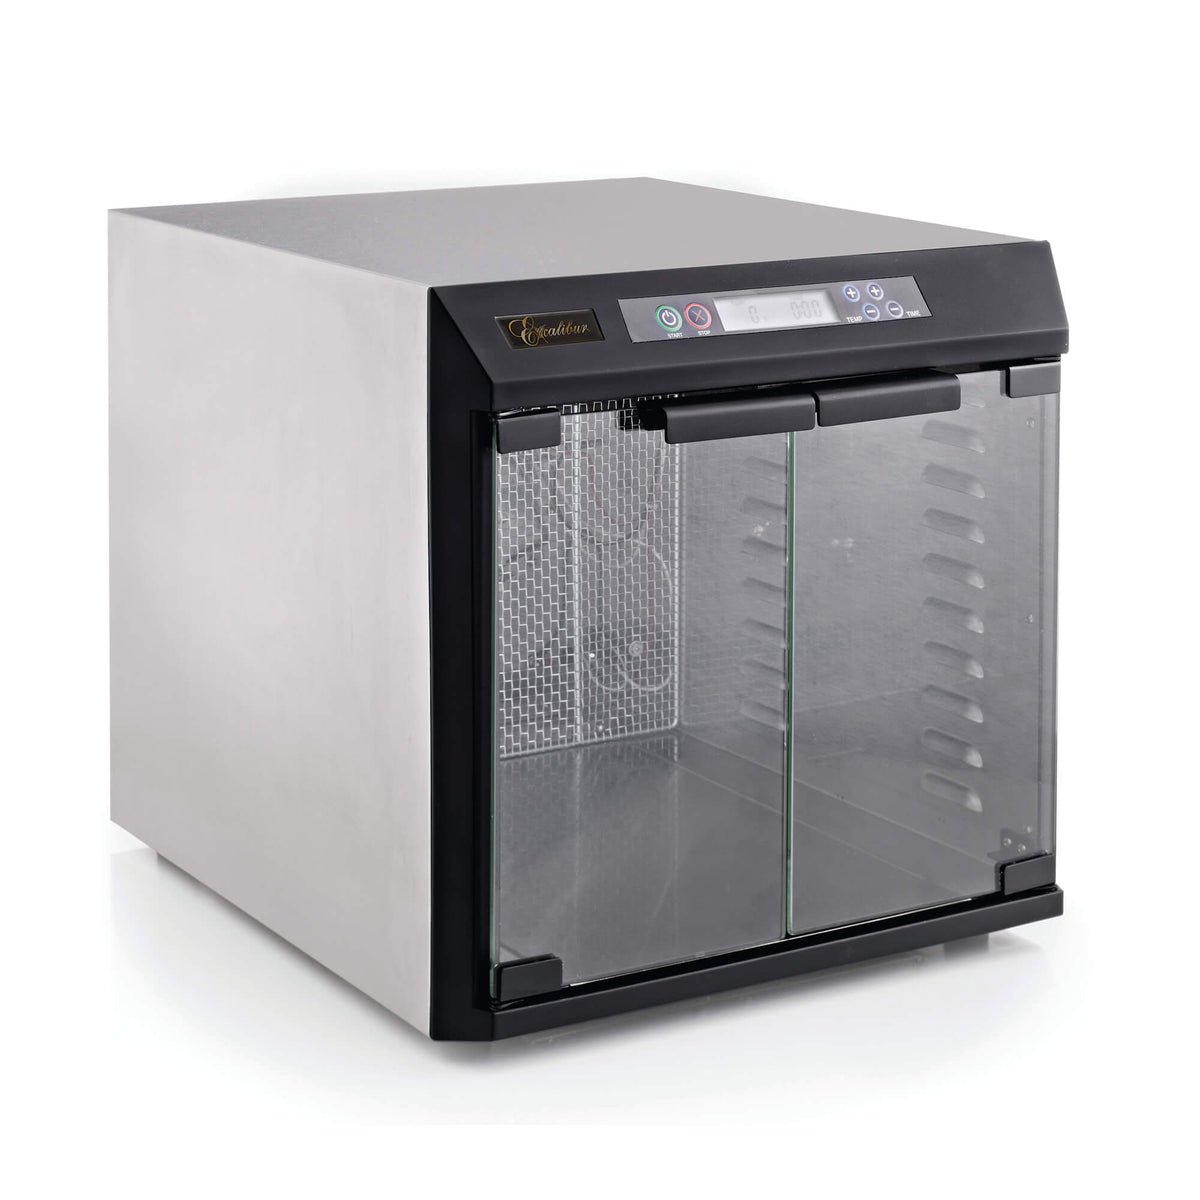 Excalibur EXC10EL 10 tray stainless steel digital dehydrator with glass armoured doors closed and no trays loaded.